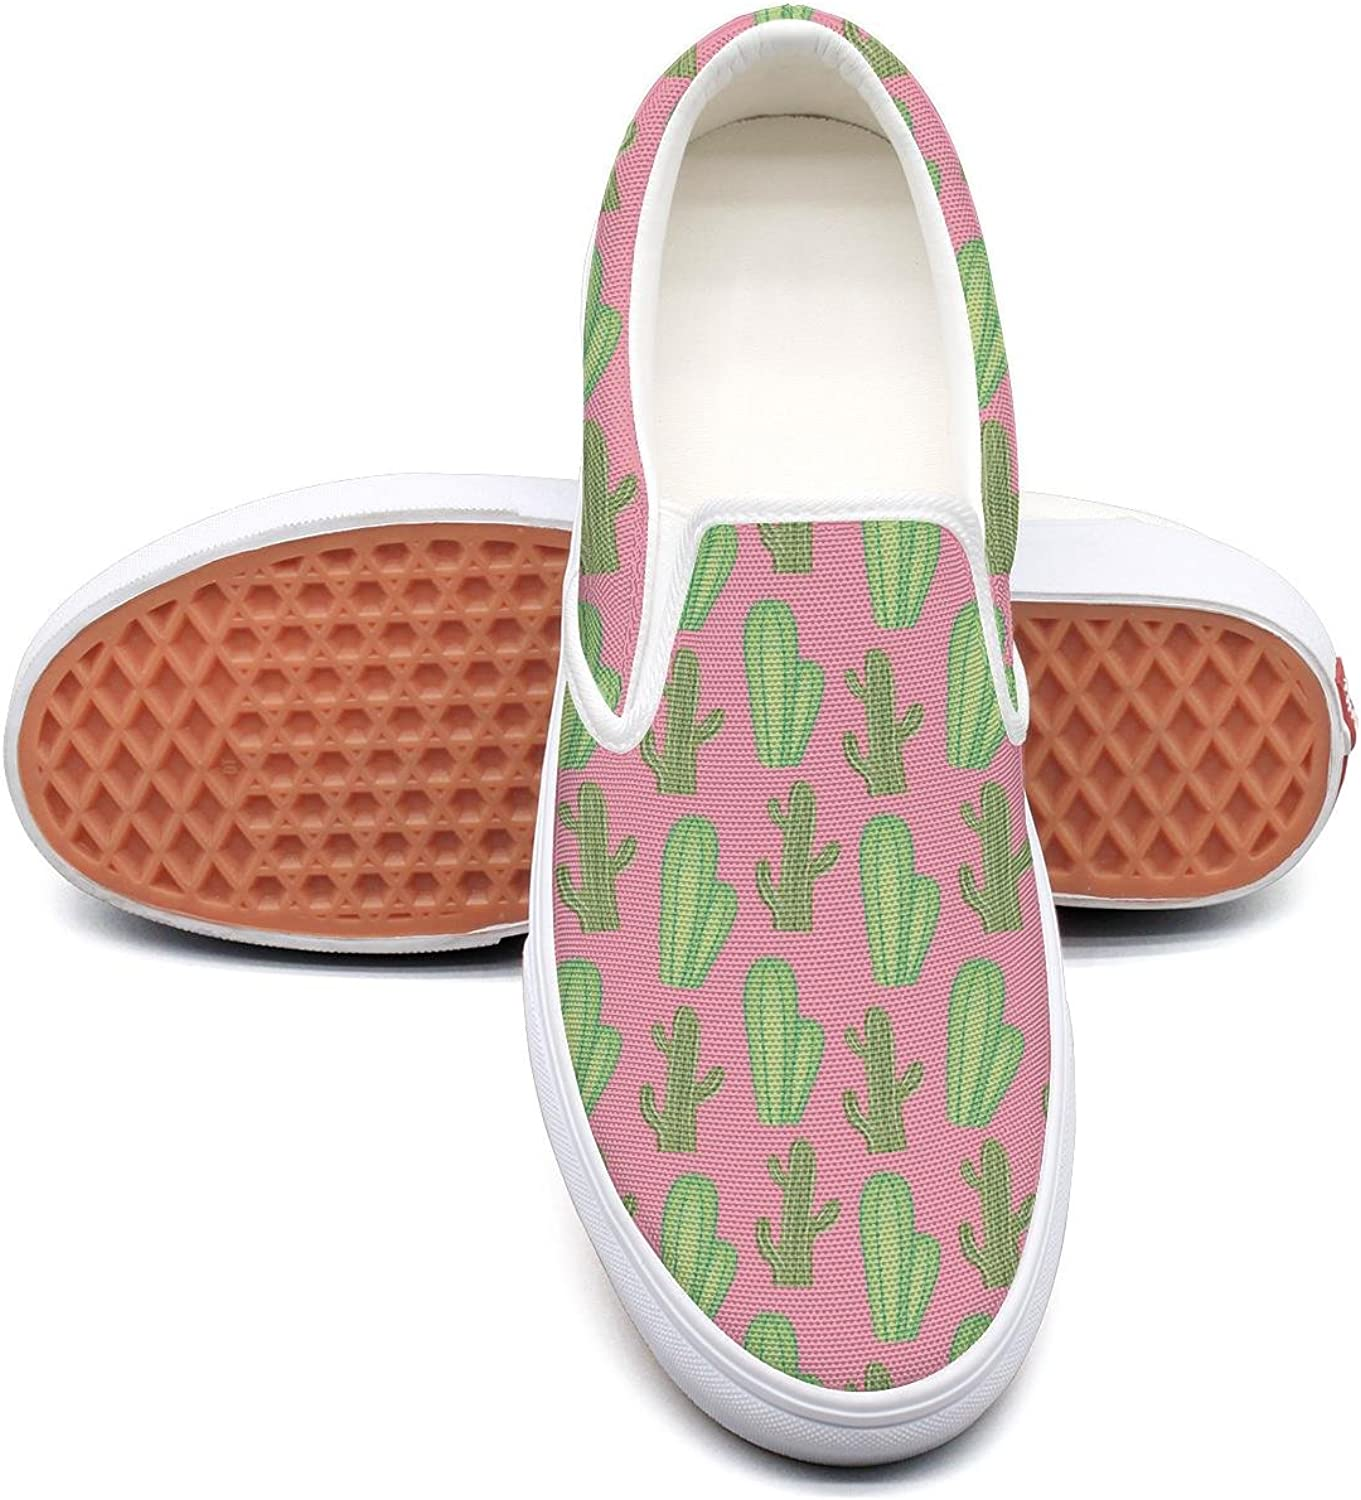 Sernfinjdr Rare Cactus Tall Casual Women's Canvas Slip on shoes Designer Cycling shoes